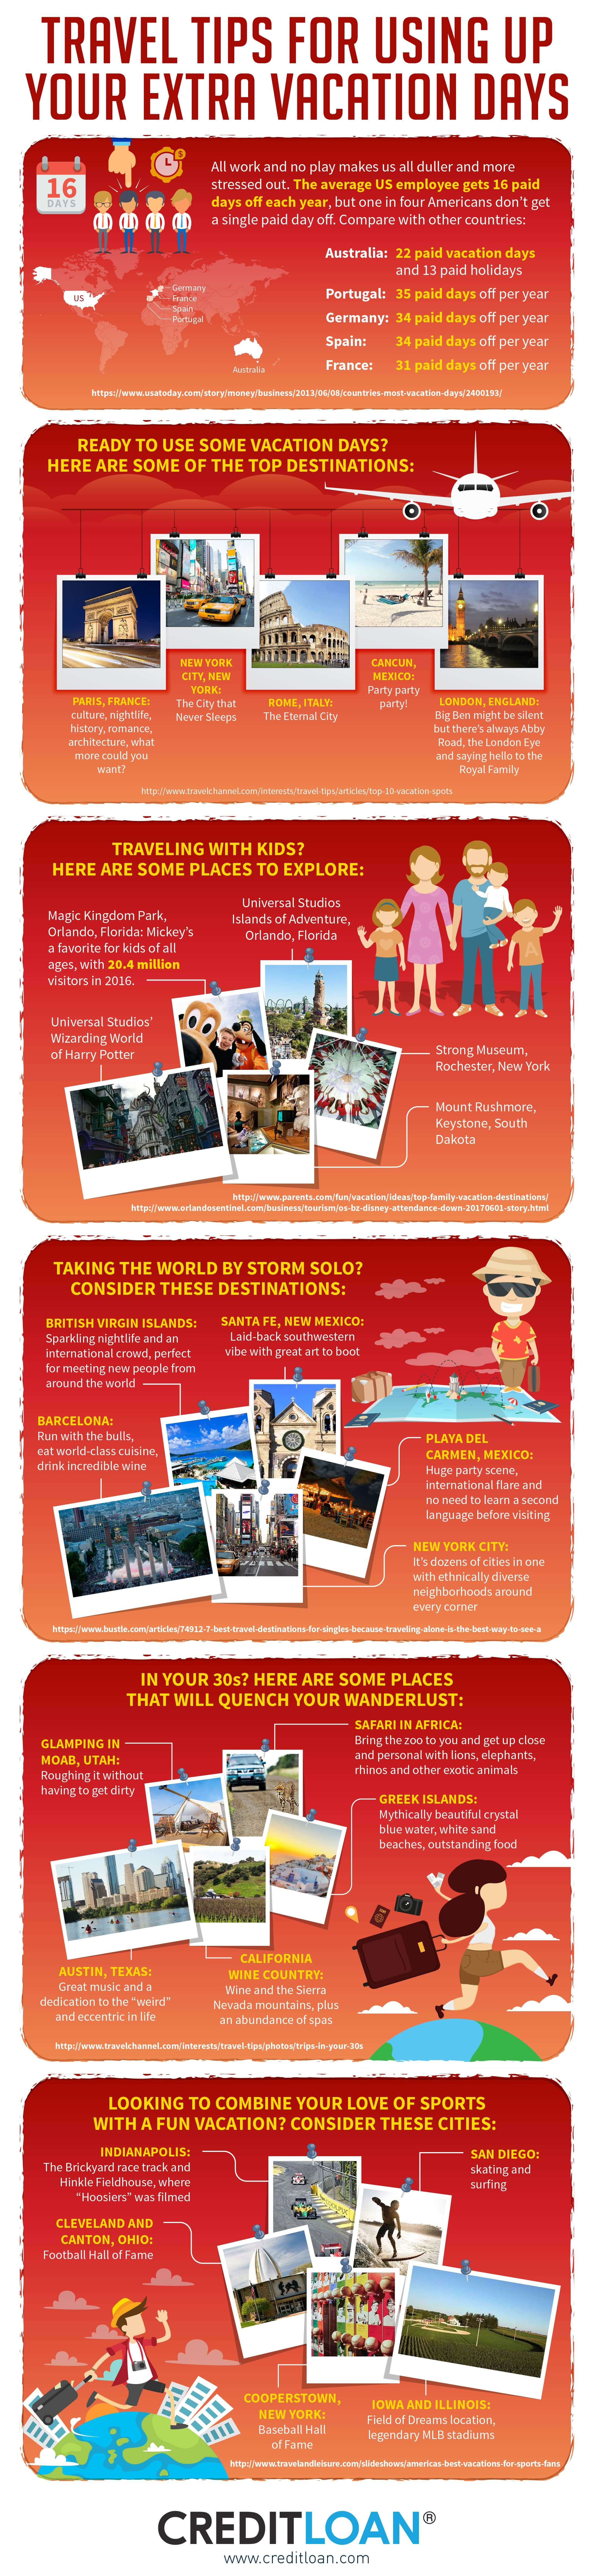 Infographic: Travel Tips to Make the Most out of Your Vacation Days